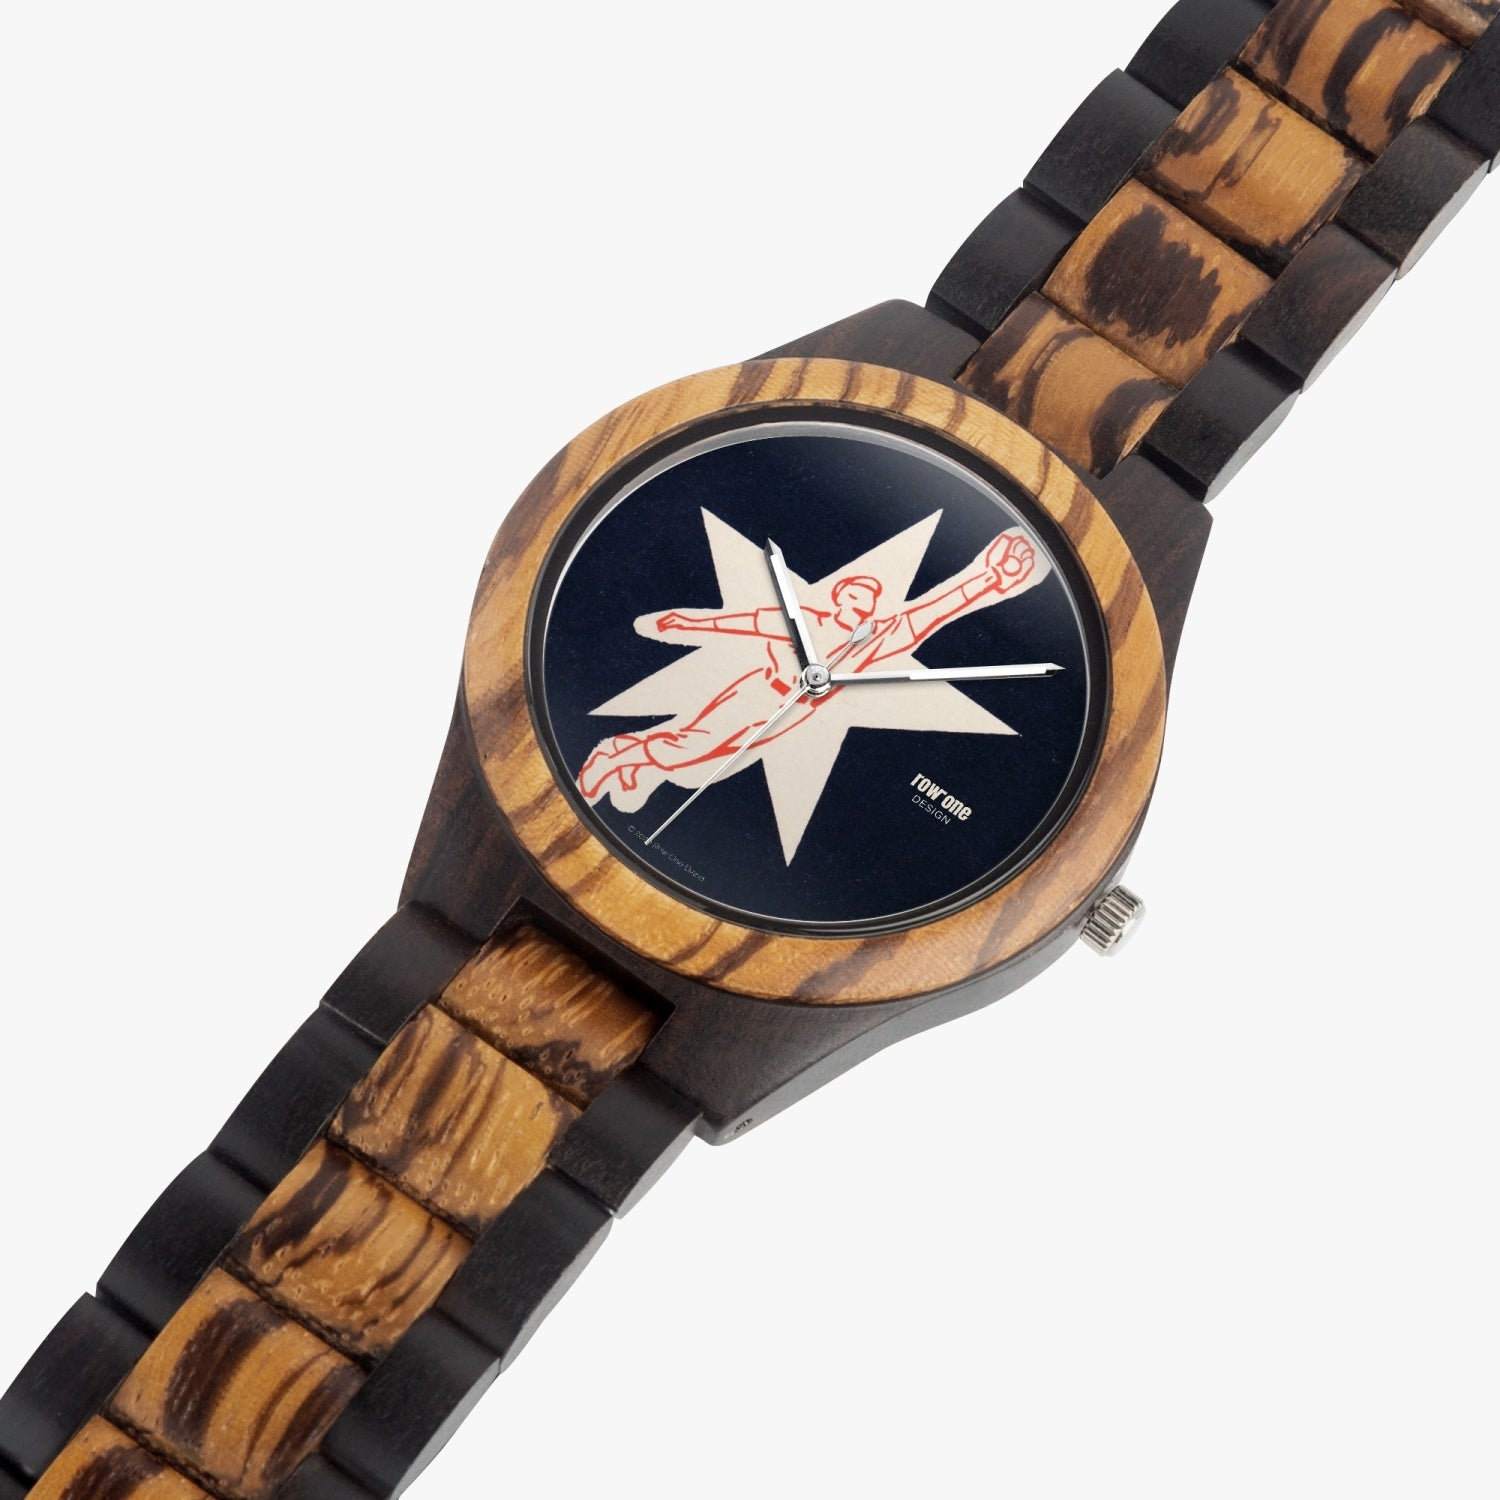 vintage baseball watch face design wooden watch by Row One Brand